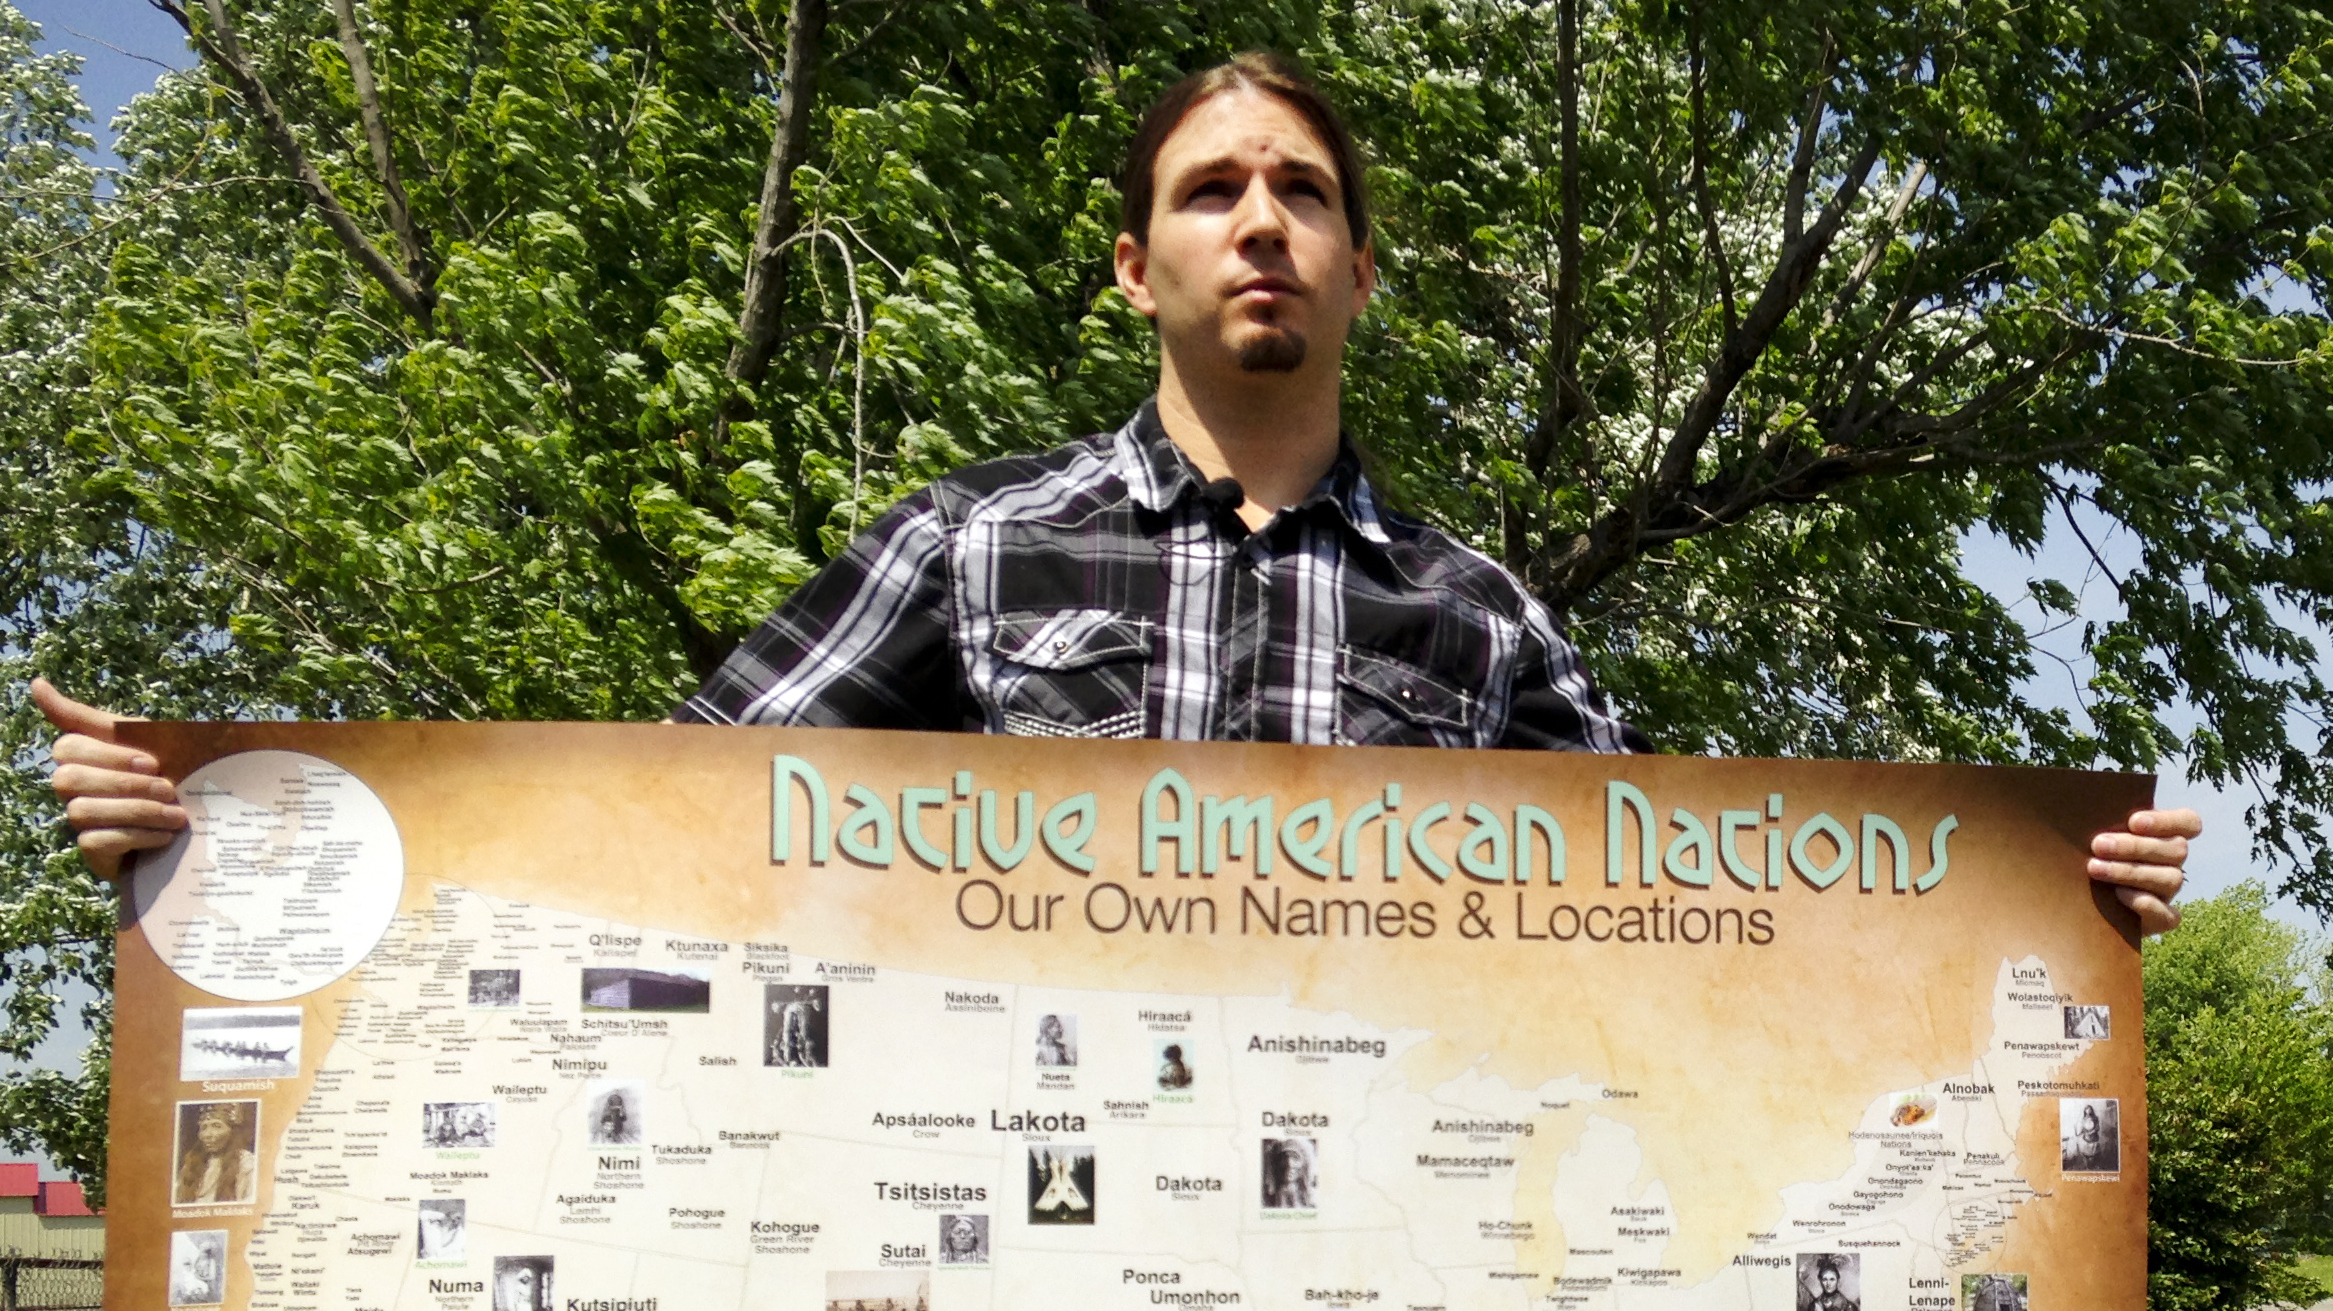 Very valuable map of native american tribes in america